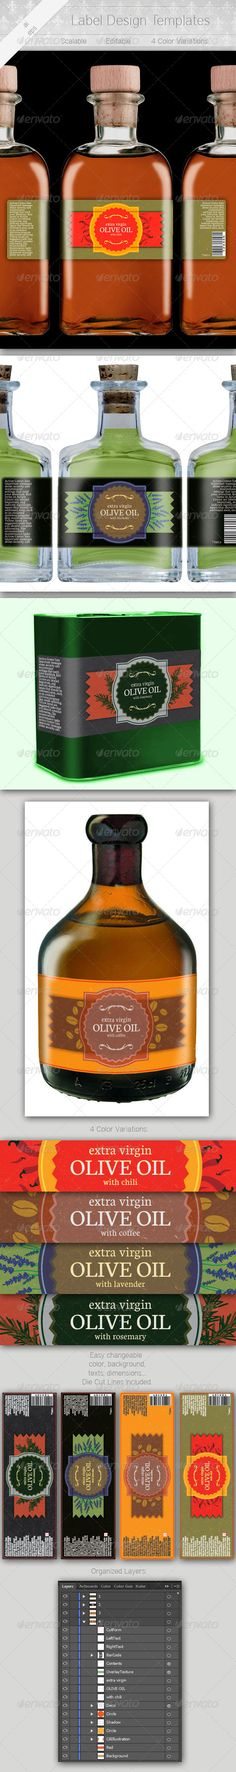 Label Design Print templates, Packaging design and Logos - label design templates